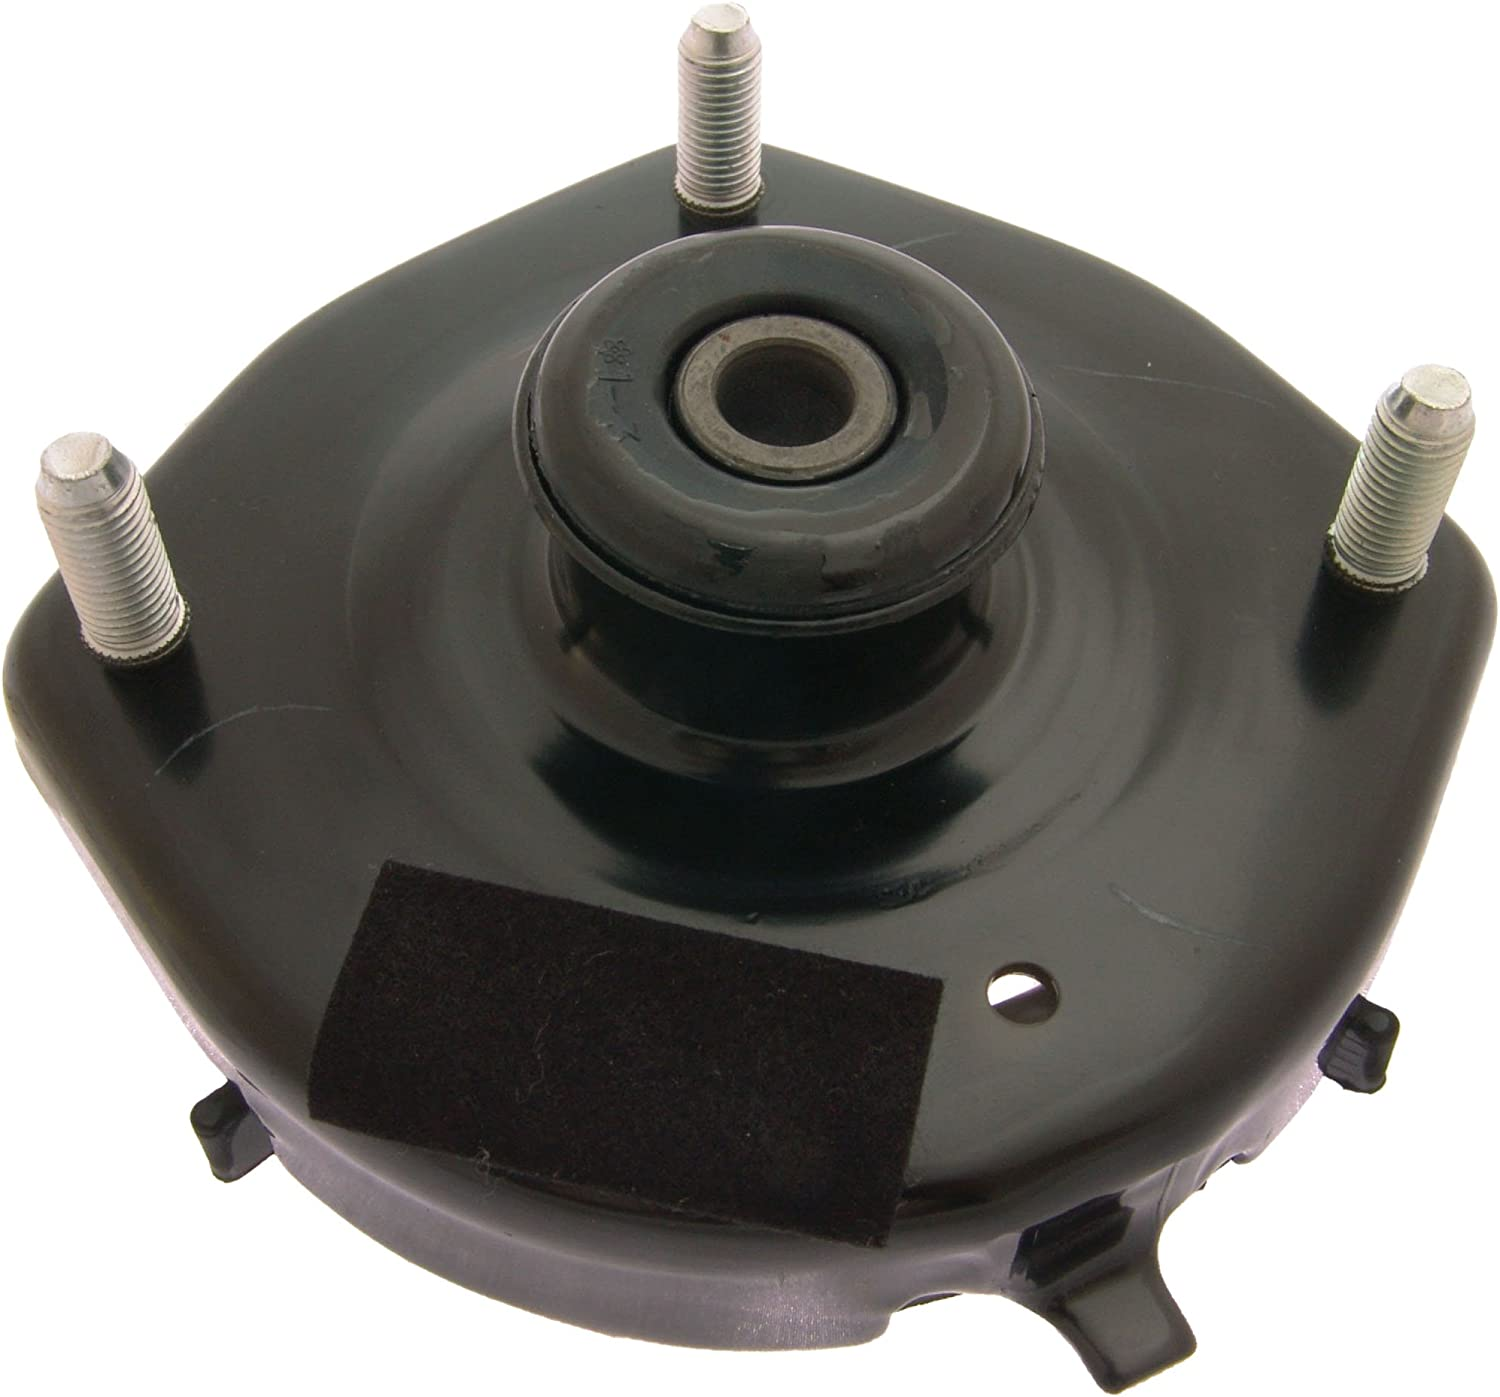 B25D28380A - Right Rear Some reservation Shock Arlington Mall Support Mazda For Febes Absorber